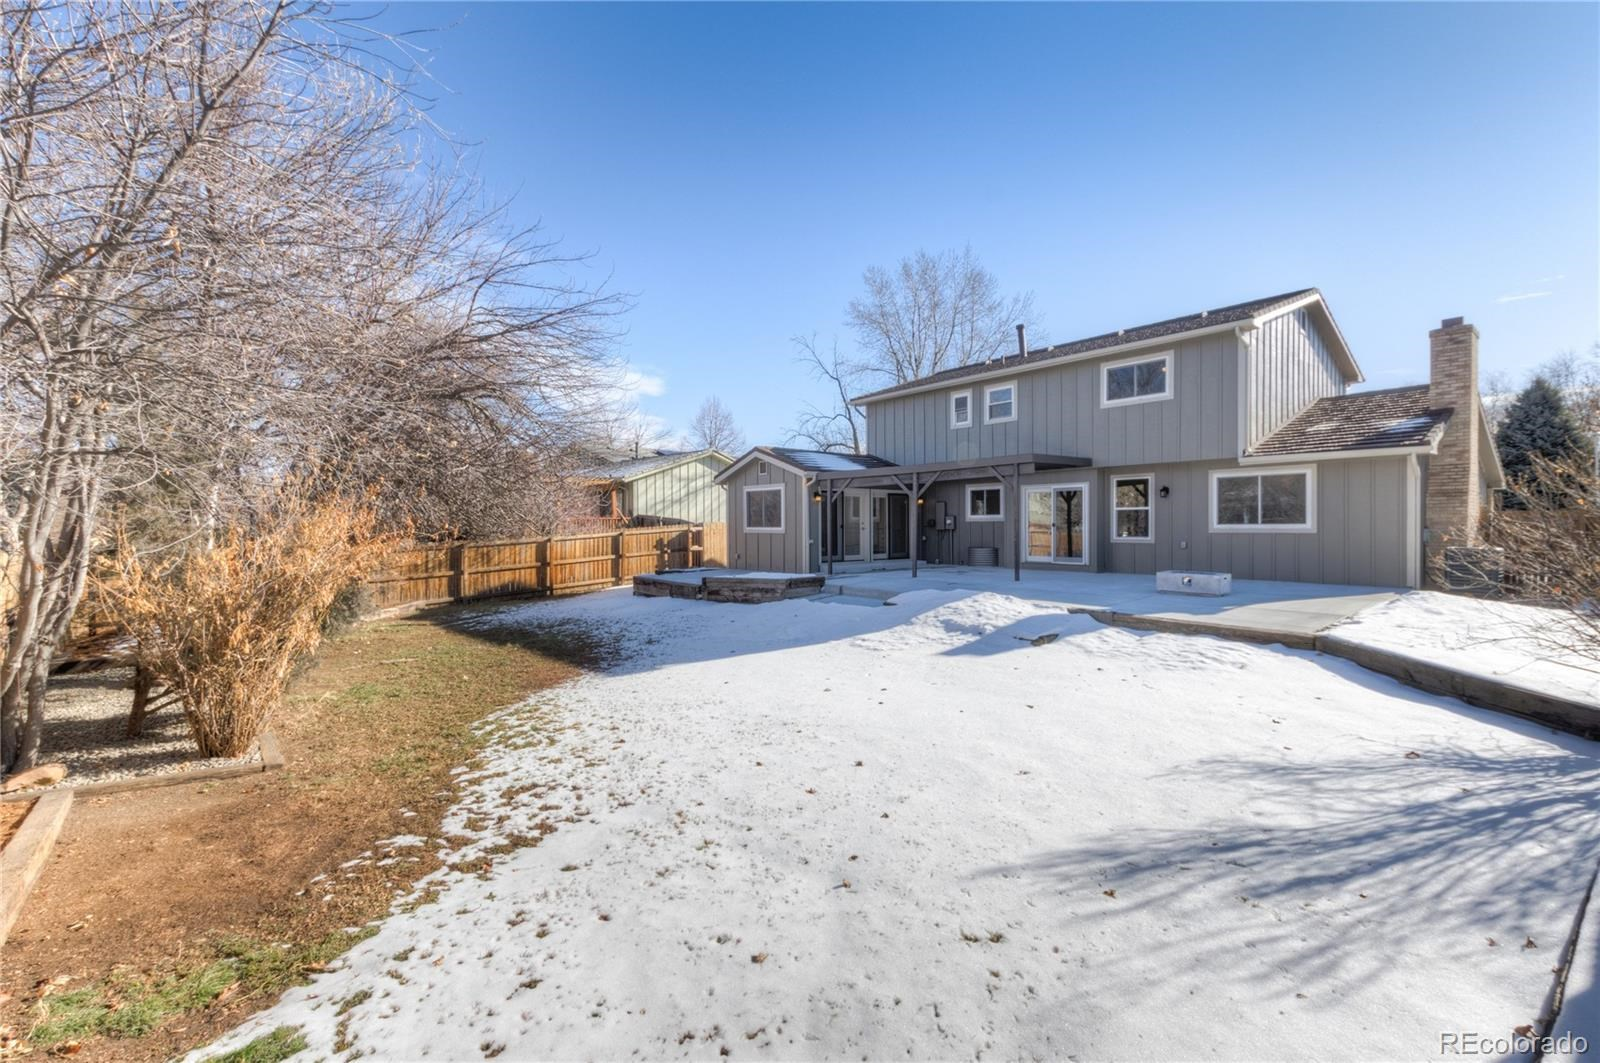 MLS# 4870124 - 35 - 4075 S Niagara Way, Denver, CO 80237